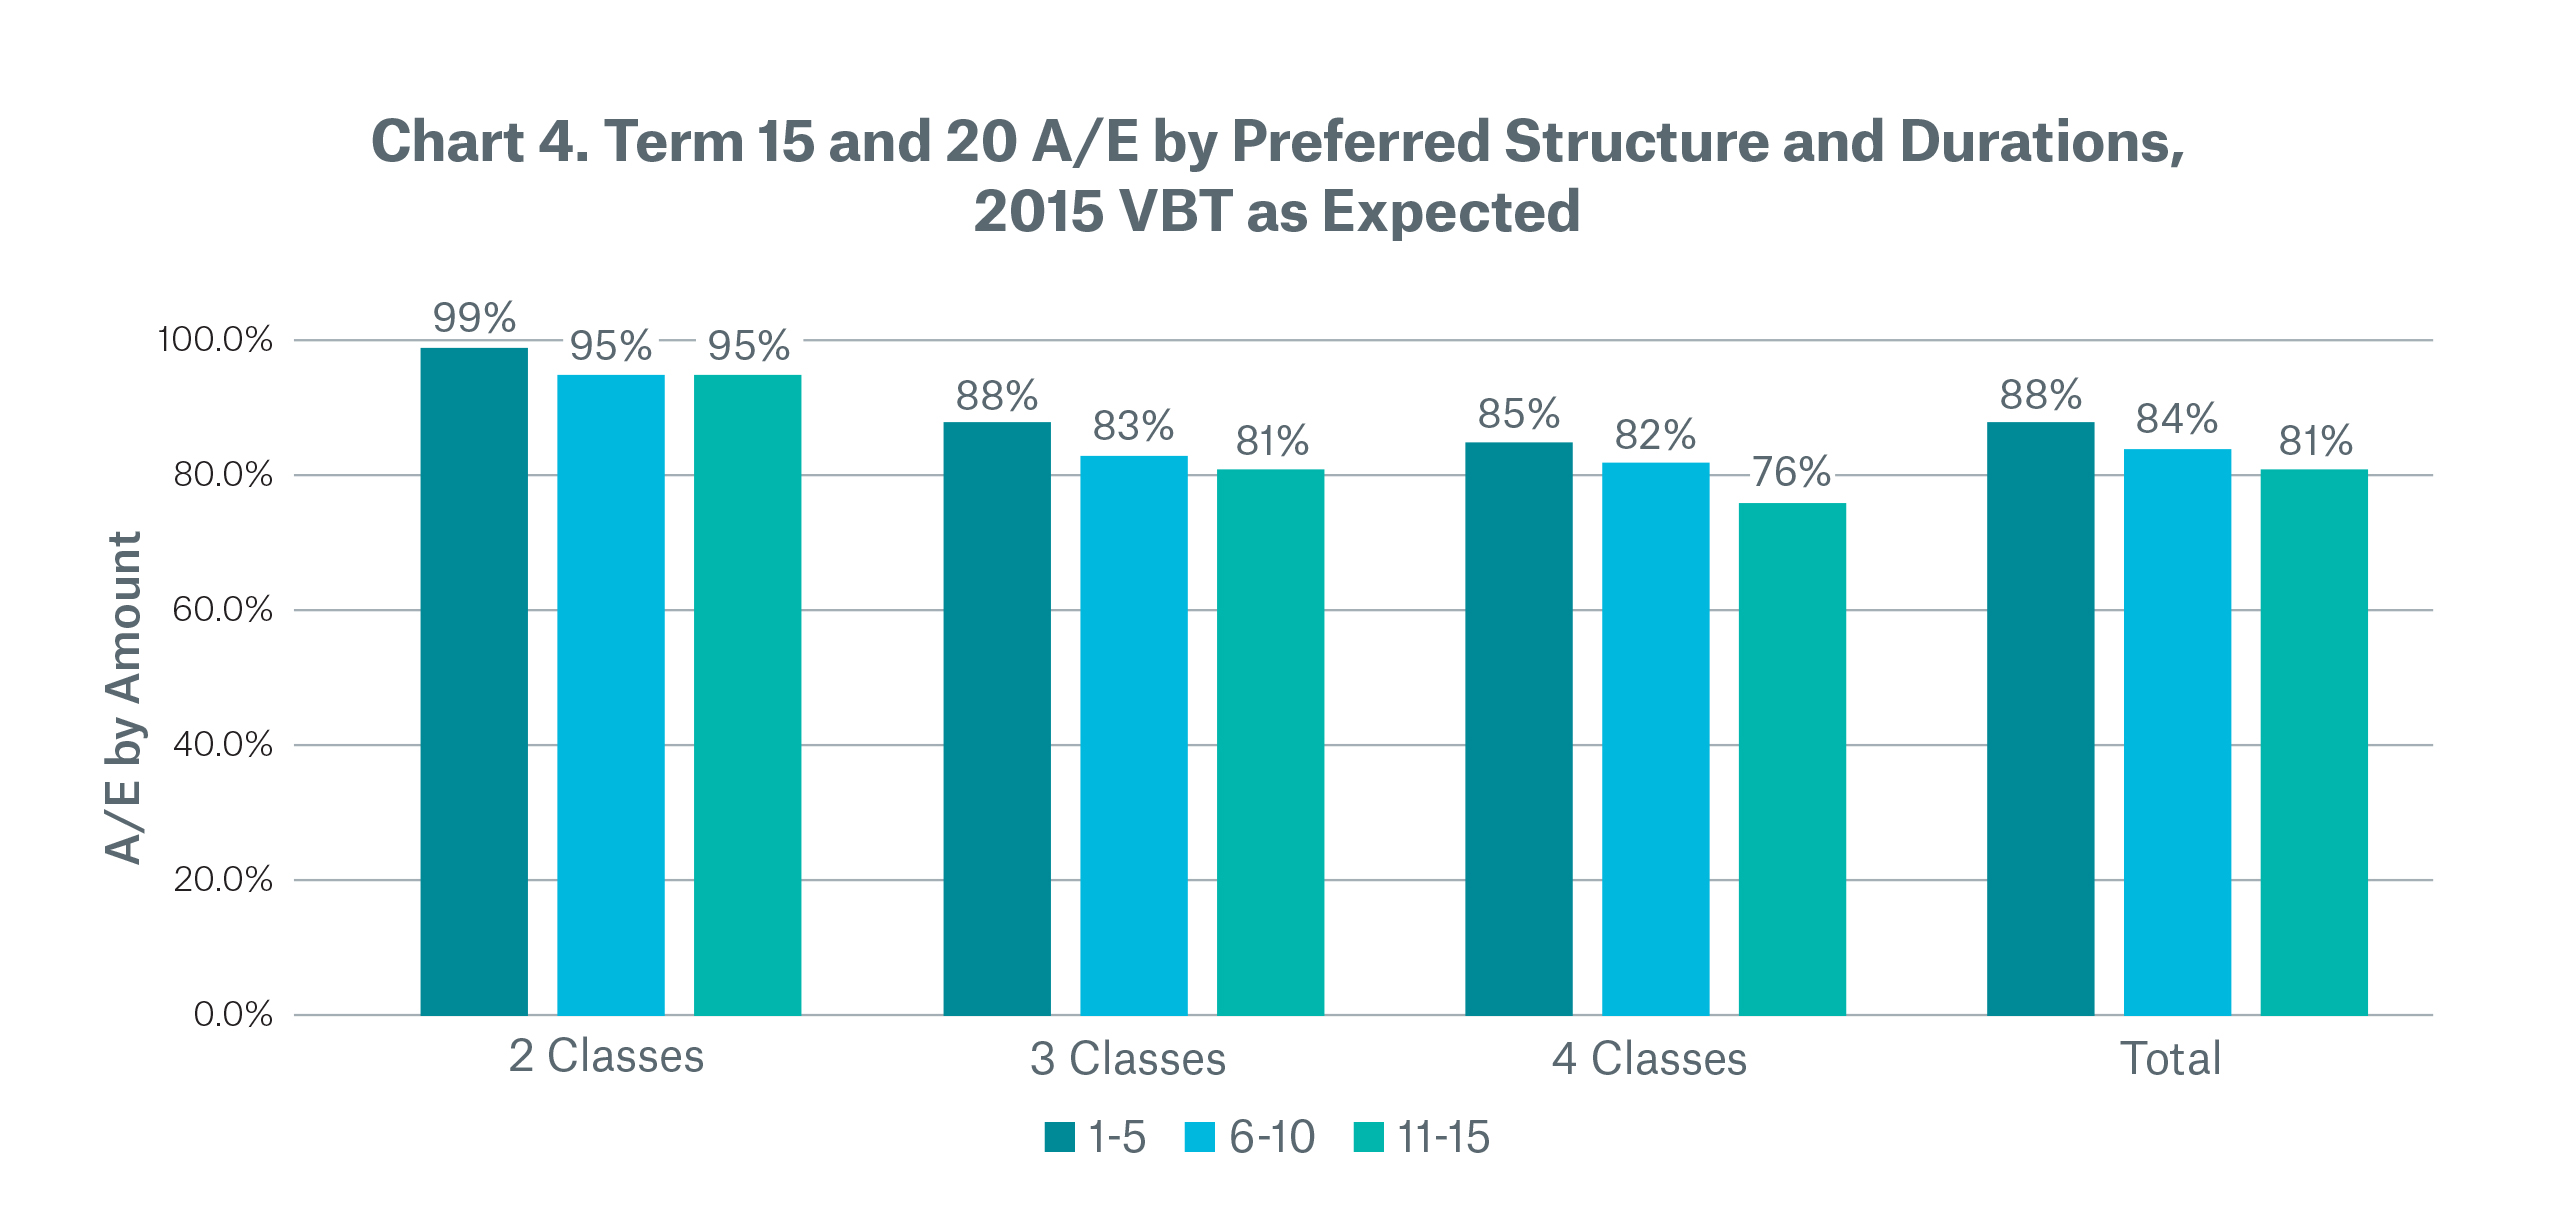 Chart 4 Term 15 and 20 A/E by preferred structure and durations, 2015 VBT as expected